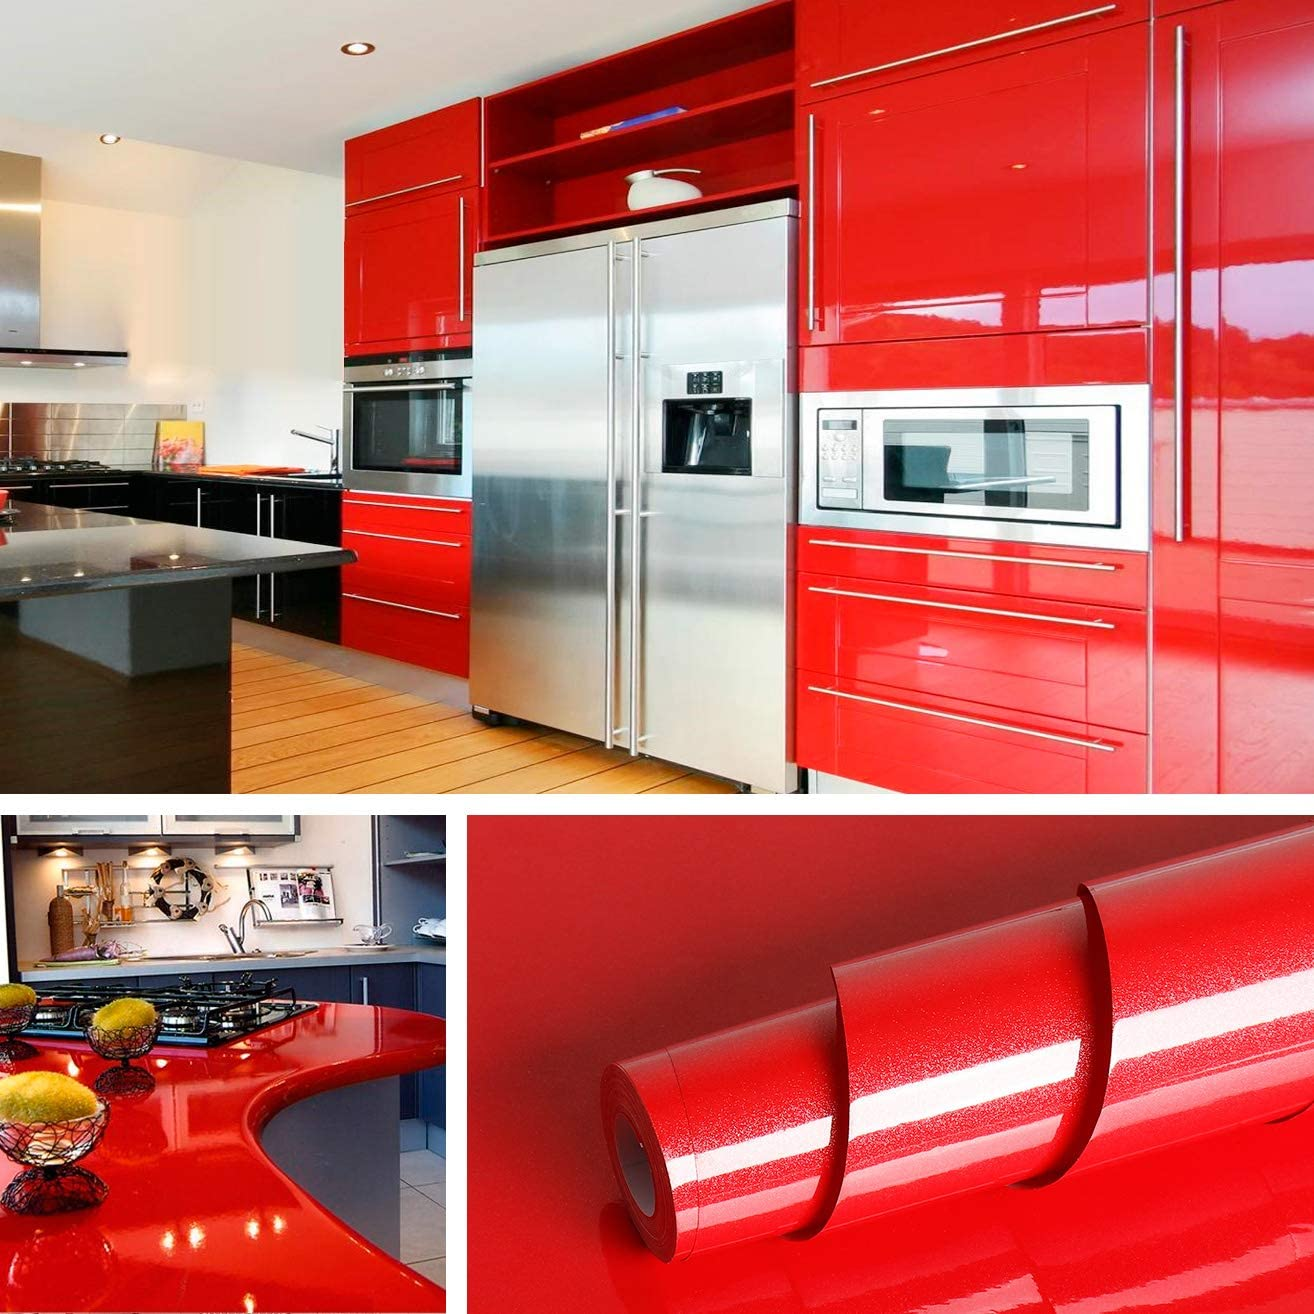 Livelynine Red Contact Paper Self Adhesive Wall Paper Decorations Peel And Stick Wallpaper Kitchen Cabinets Countertops Appliances Red Vinyl Adhesive Shelf Liners Removable Waterproof 15 8x78 8 Inch Amazon Com